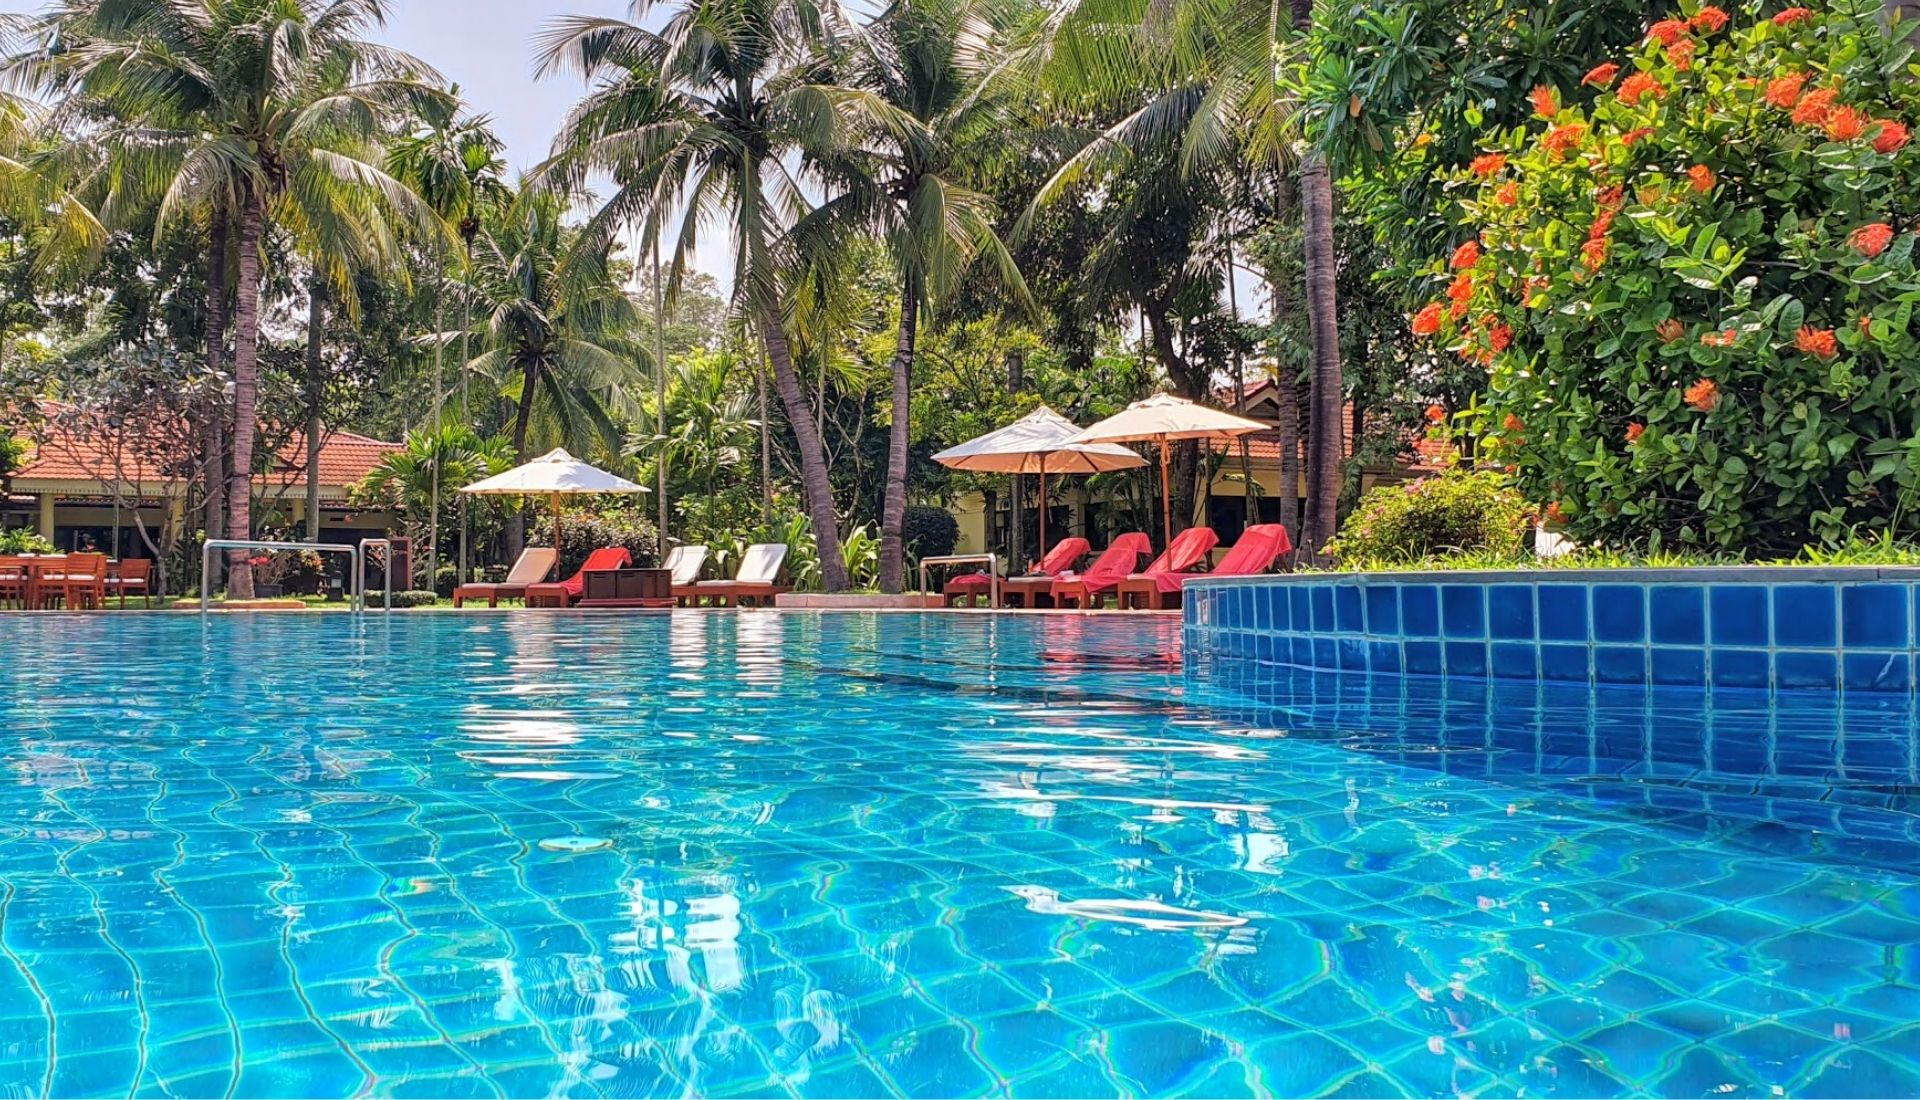 The largest free-form swimming pool in Siem Reap